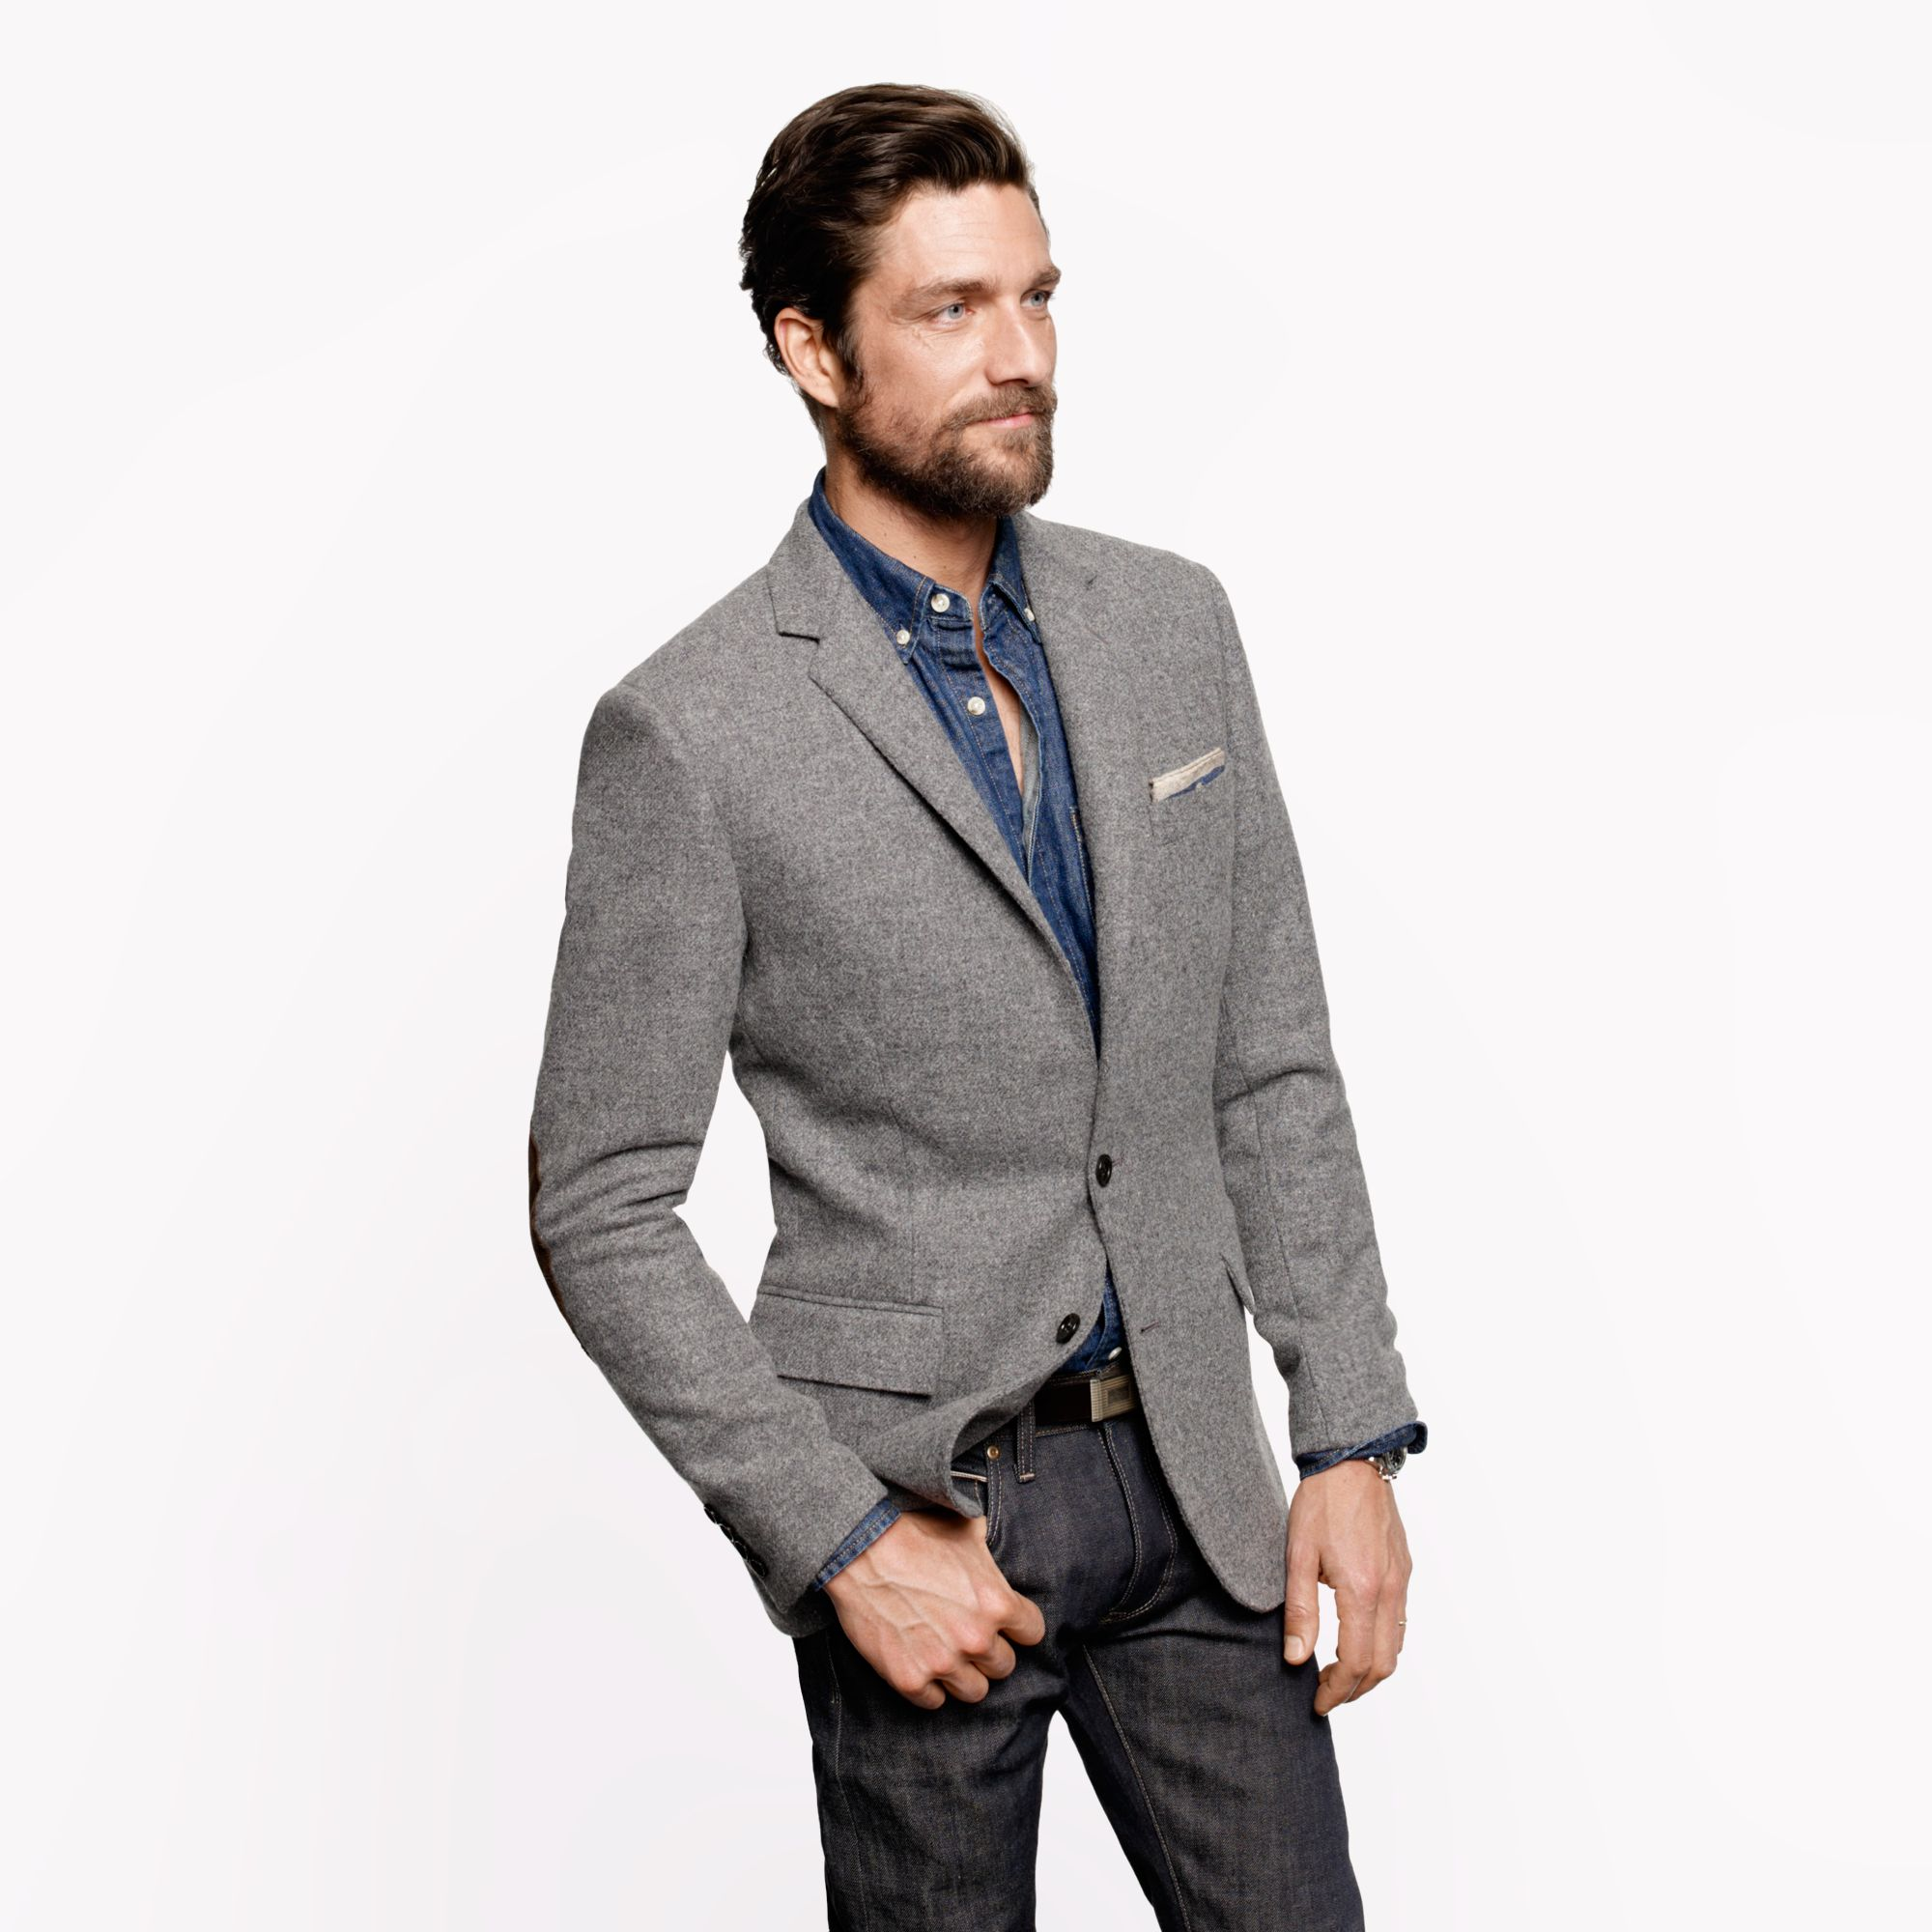 J.crew Ludlow Elbow-patch Sportcoat In Colburn English Tweed in